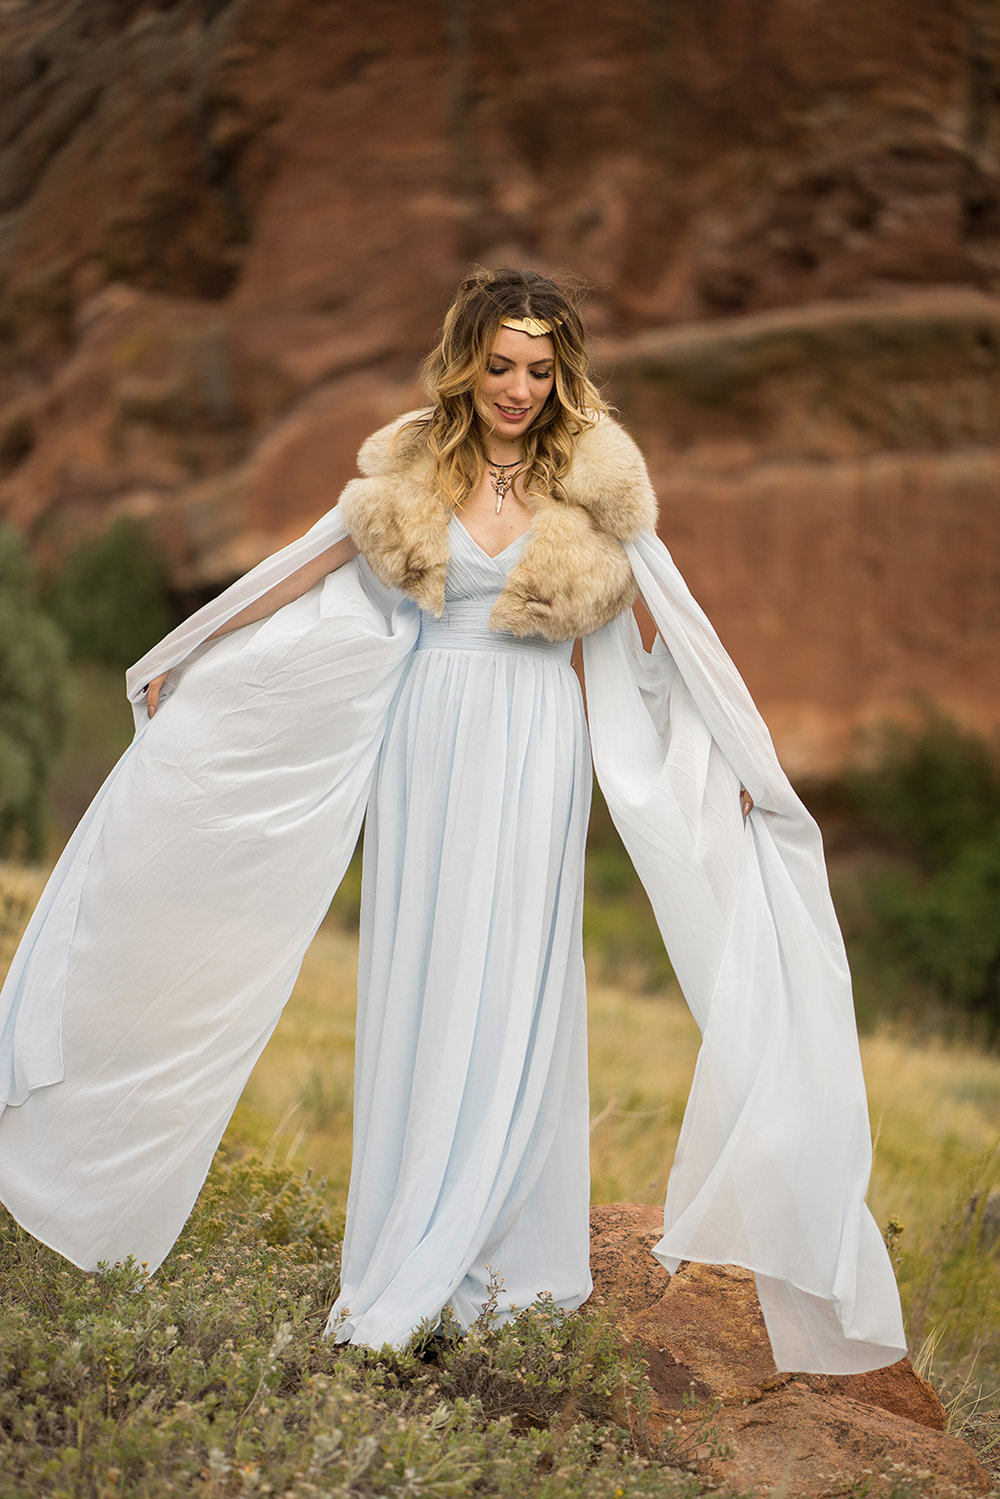 Game of Thrones styled session - Red Rocks Park